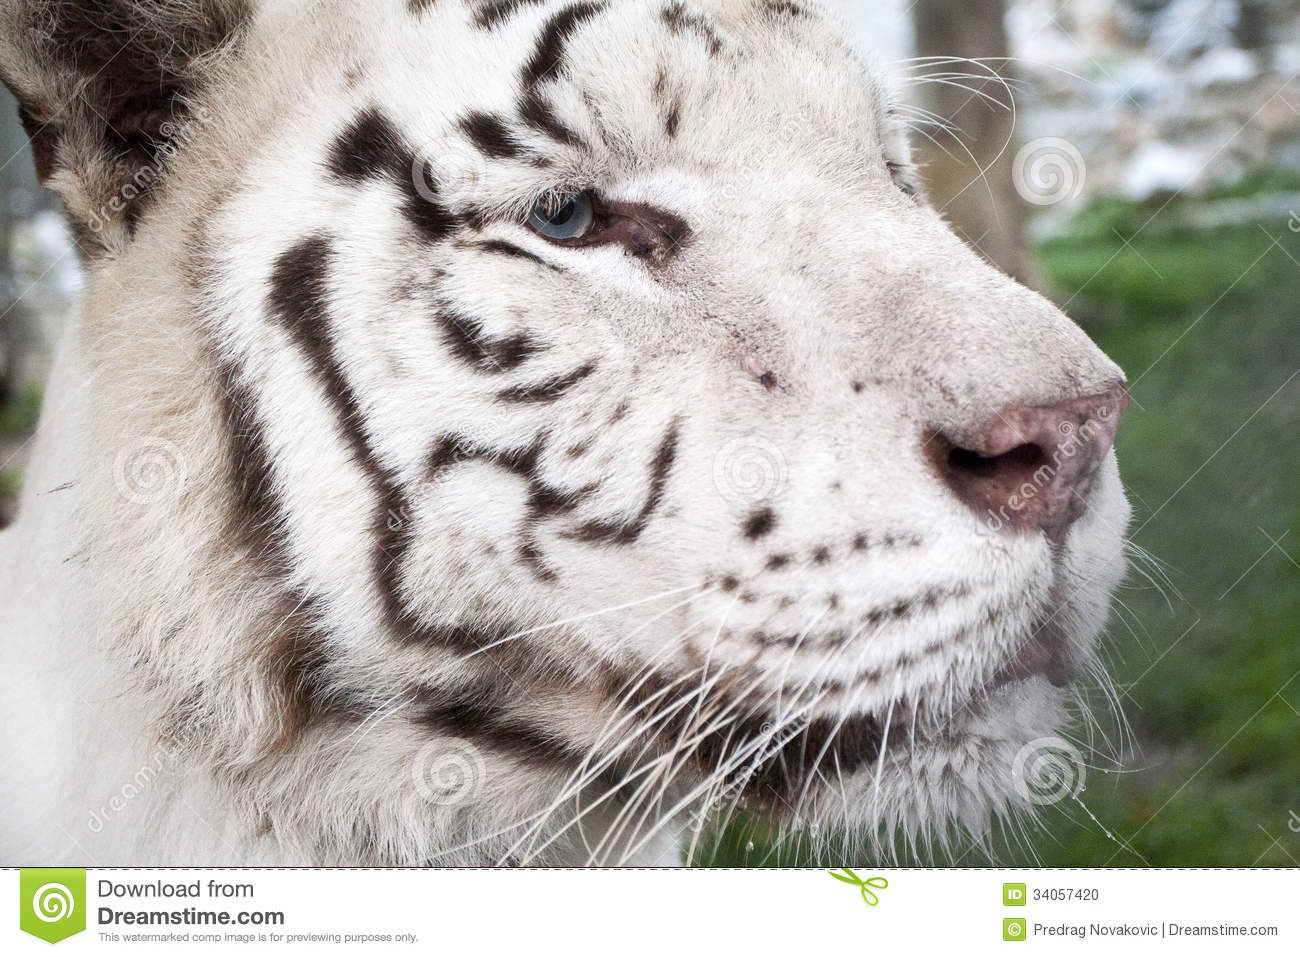 White tiger close up face - photo#17